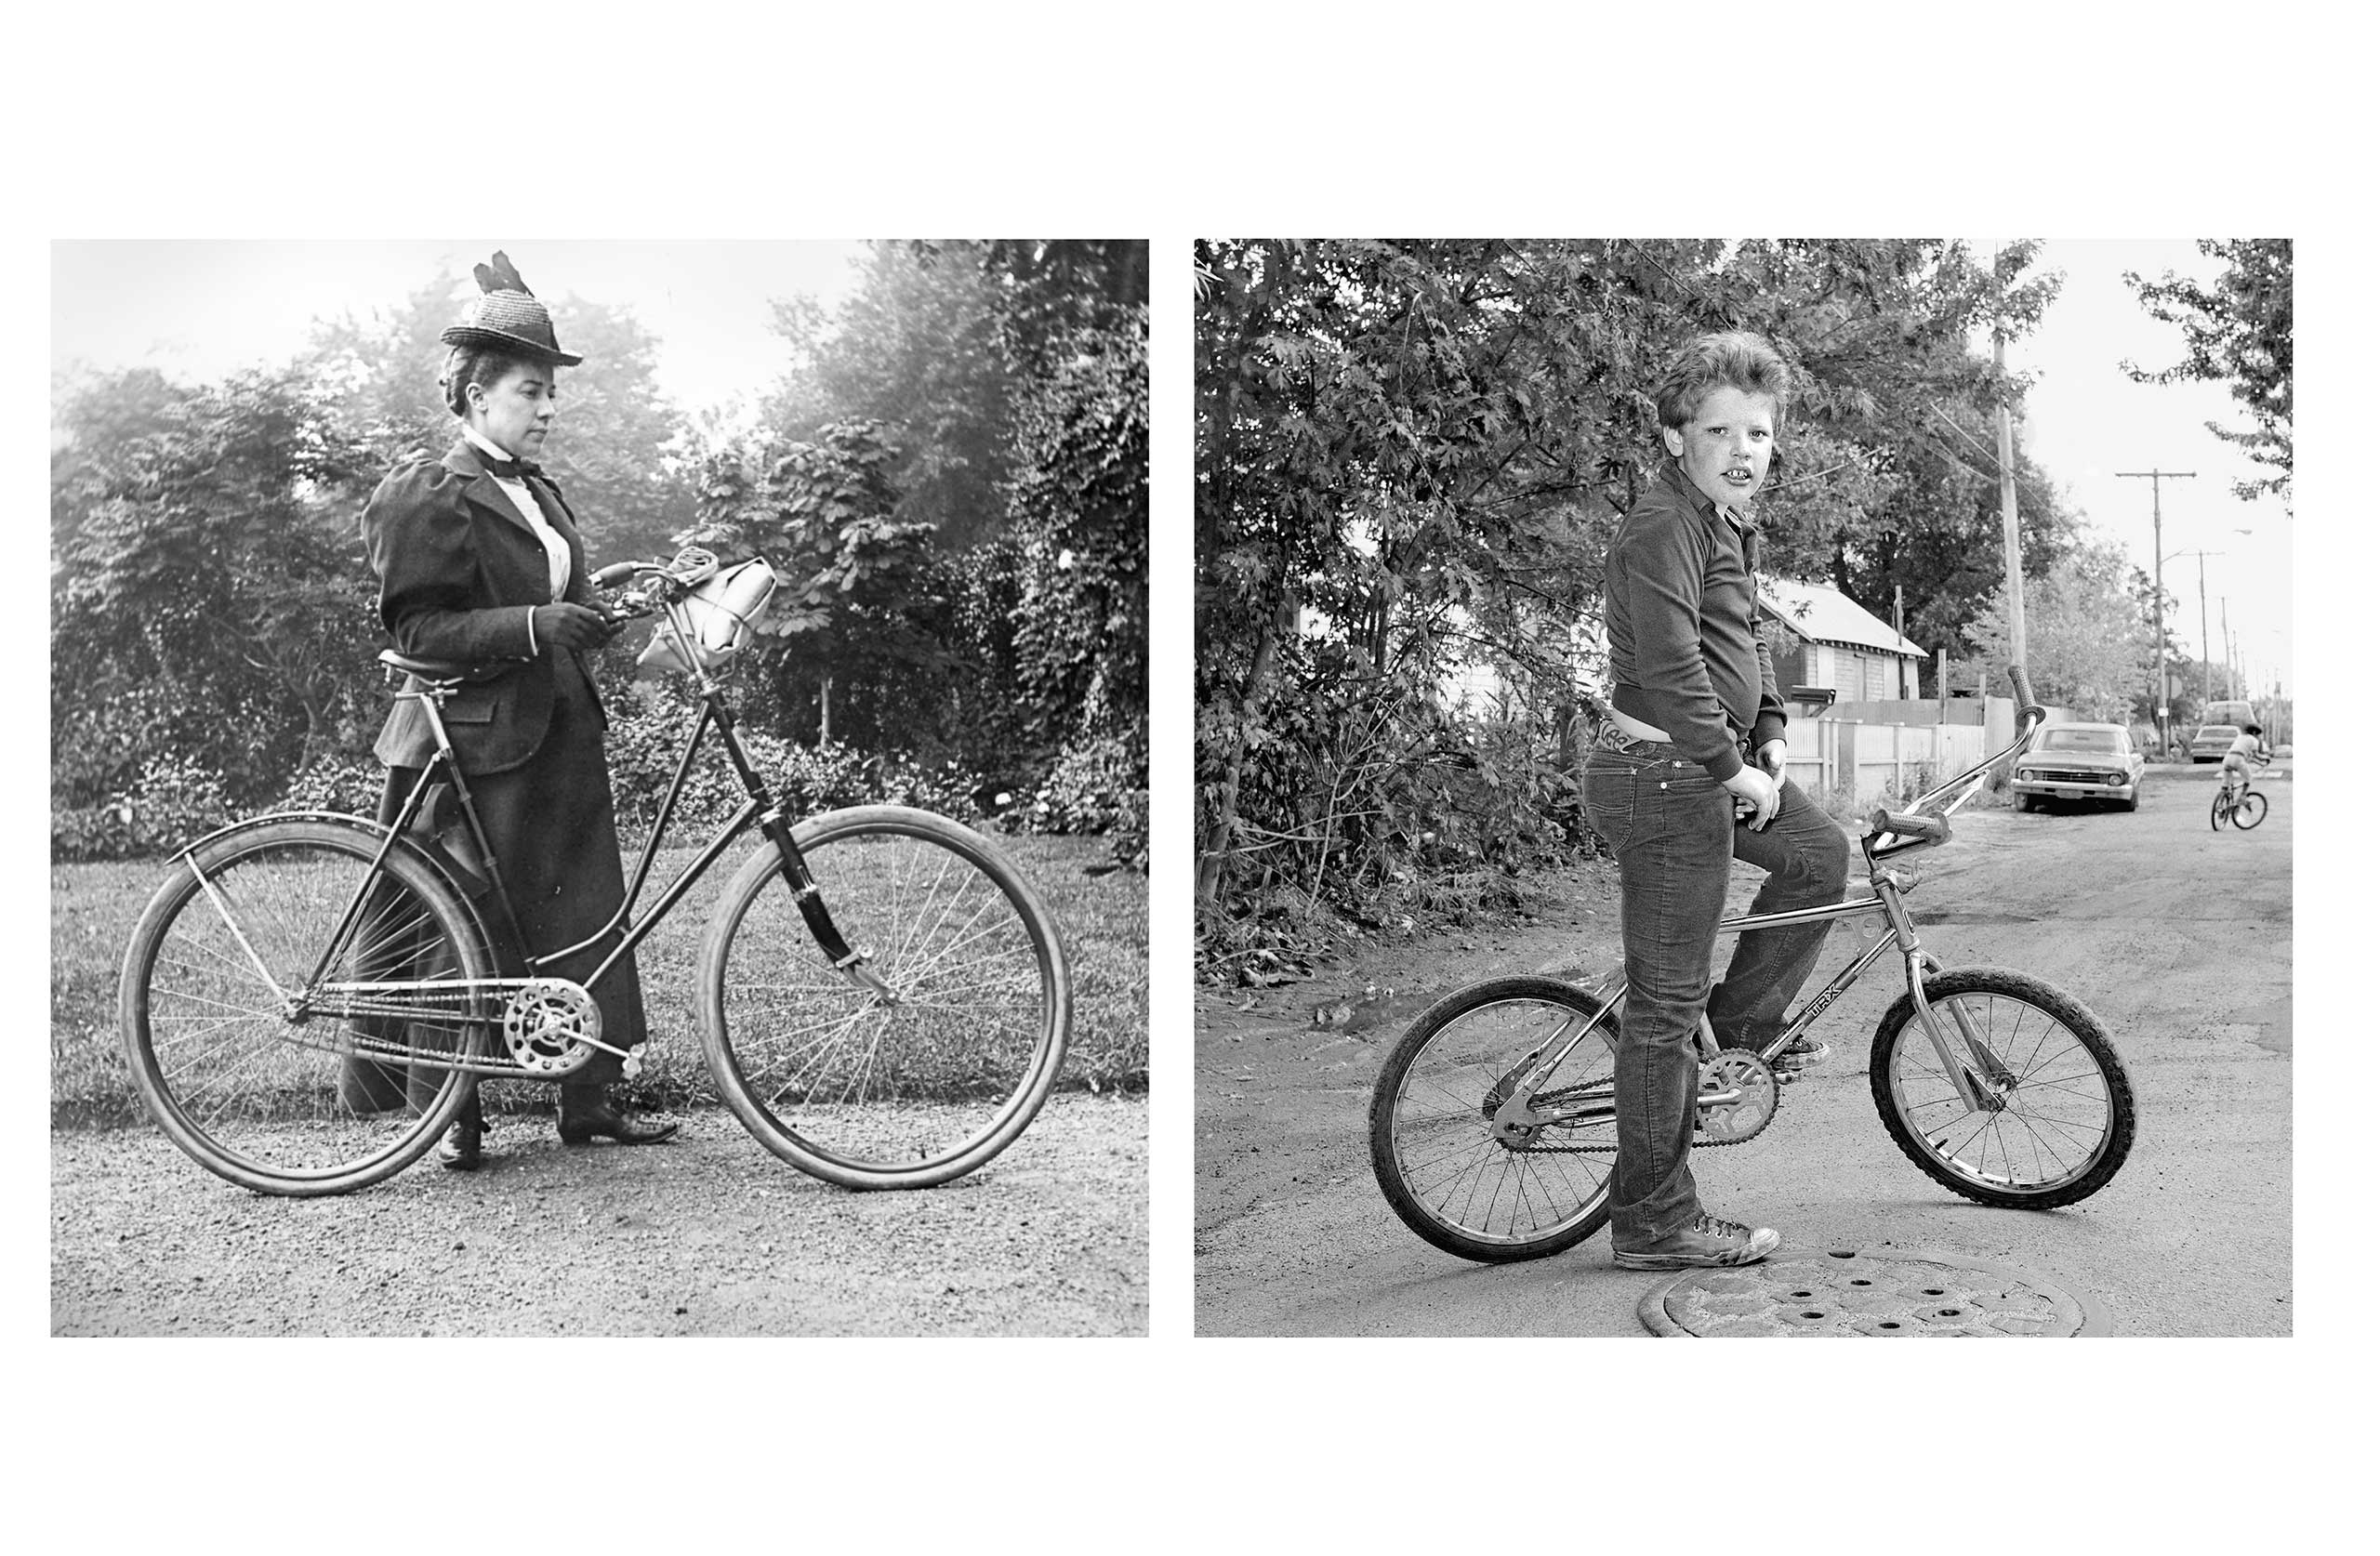 In Conversation: The Photographs of Alice Austen and Christine Oskinski, Alice Austen House, N.Y.: Sept. 18 - Dec. 23                                                                                              (Caption: Alice Austen, [Self-Portrait with Bicycle], 1897, and Boy on Bicycle, 1983-1984)                                                                                             Disclaimer: The Alice Austen House's curator Paul Moakley, is Deputy Director of Photography and Visual Enterprise at TIME